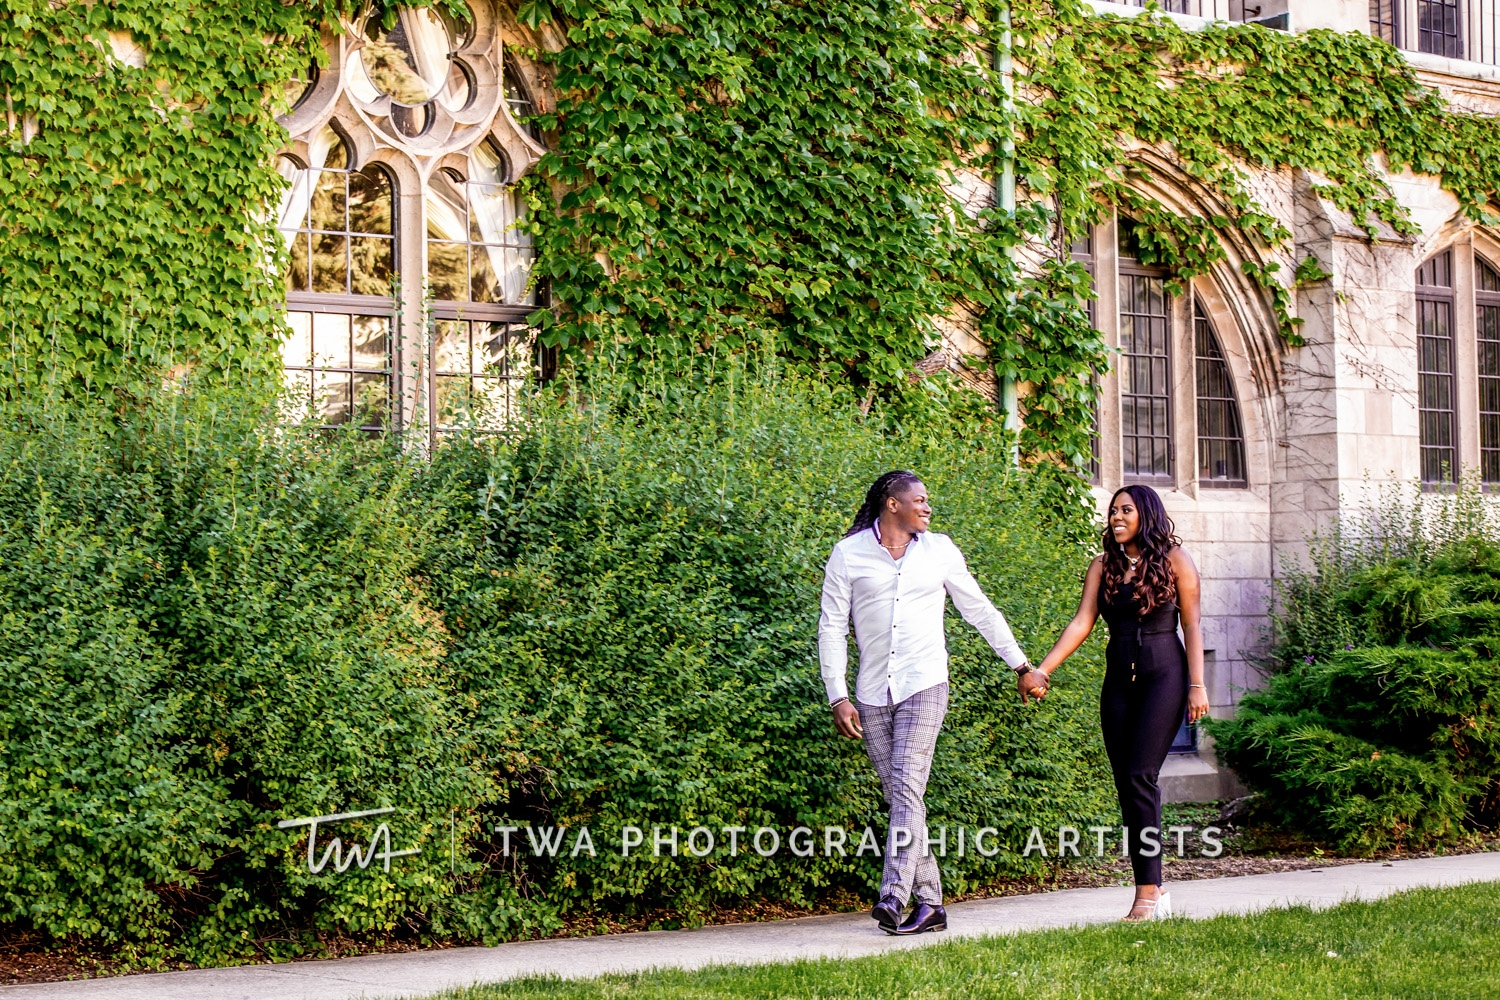 Chicago-Wedding-Photographer-TWA-Photographic-Artists-Dominican-University_Stephen_Foster_HM-046